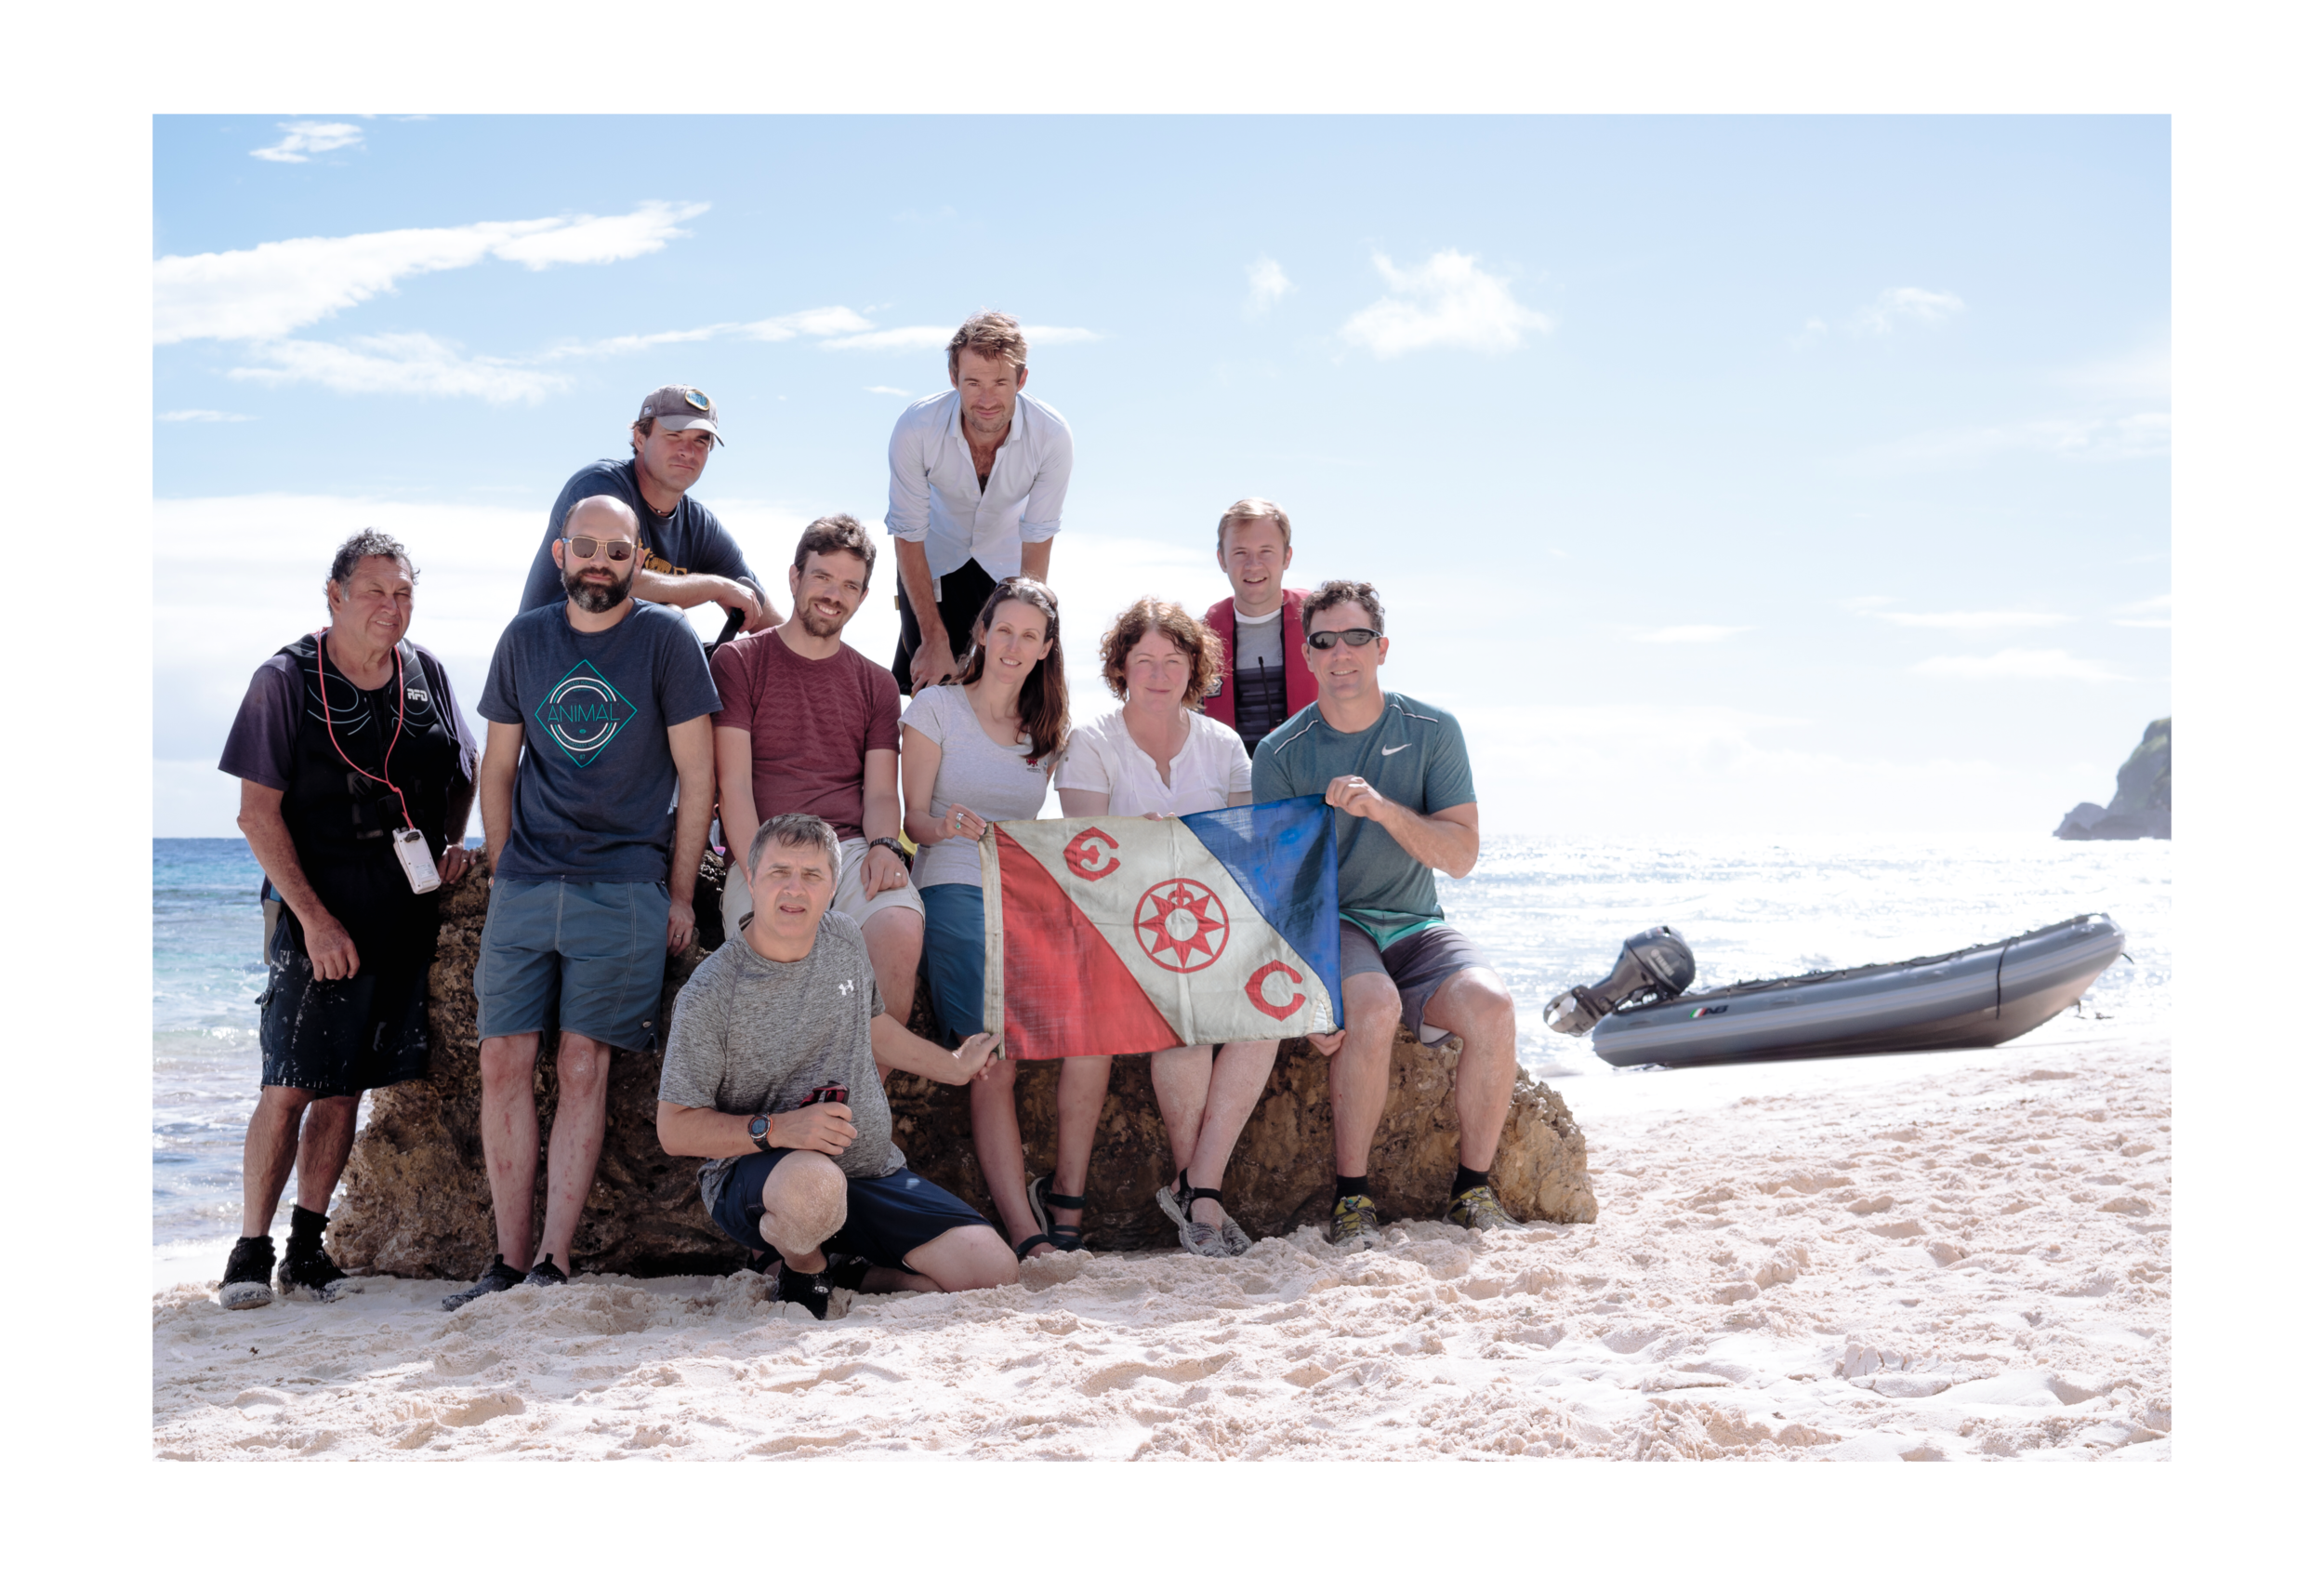 Expedition team with The Explorers Club Flag #97 on the Northwest Beach of Henderson Island